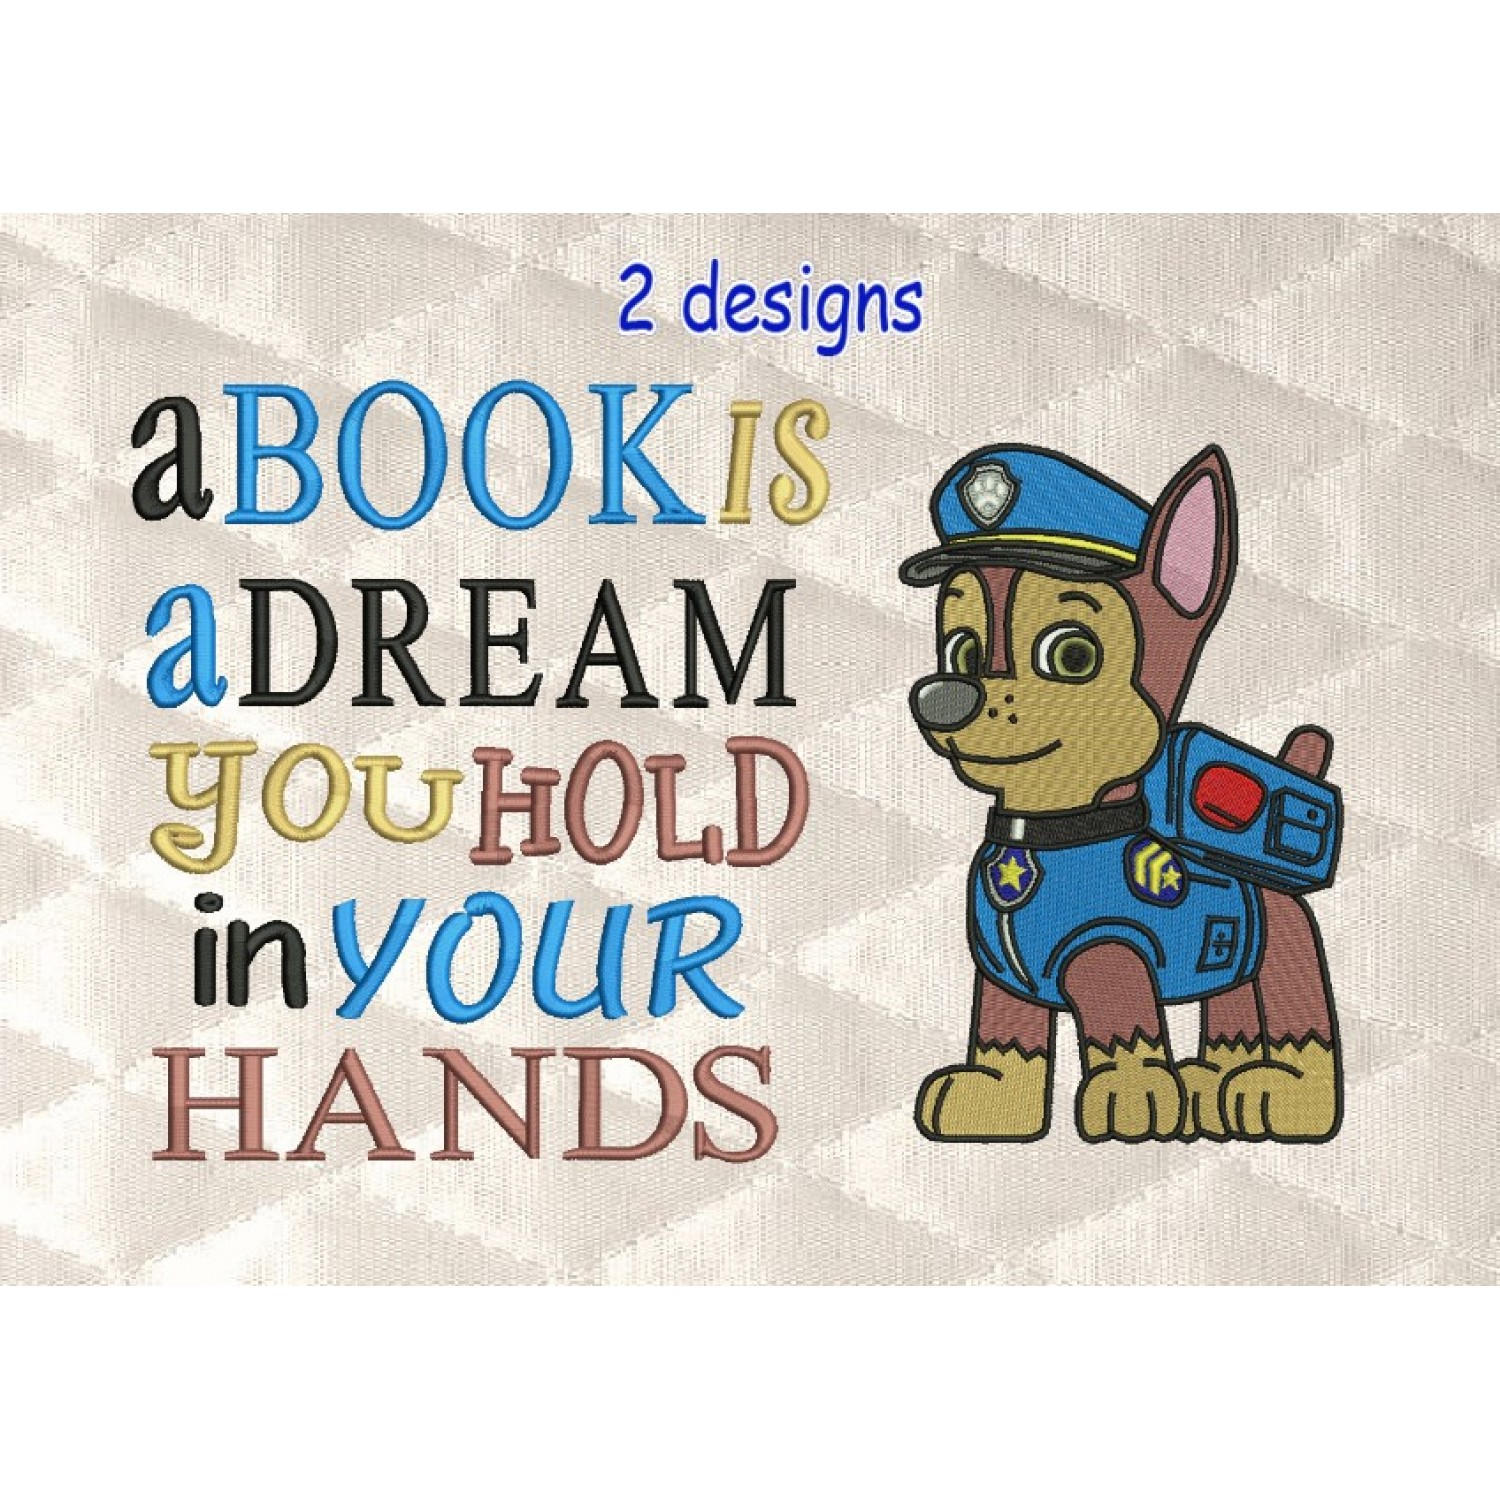 Paw Patrol Chase embroidery with a book is a dream